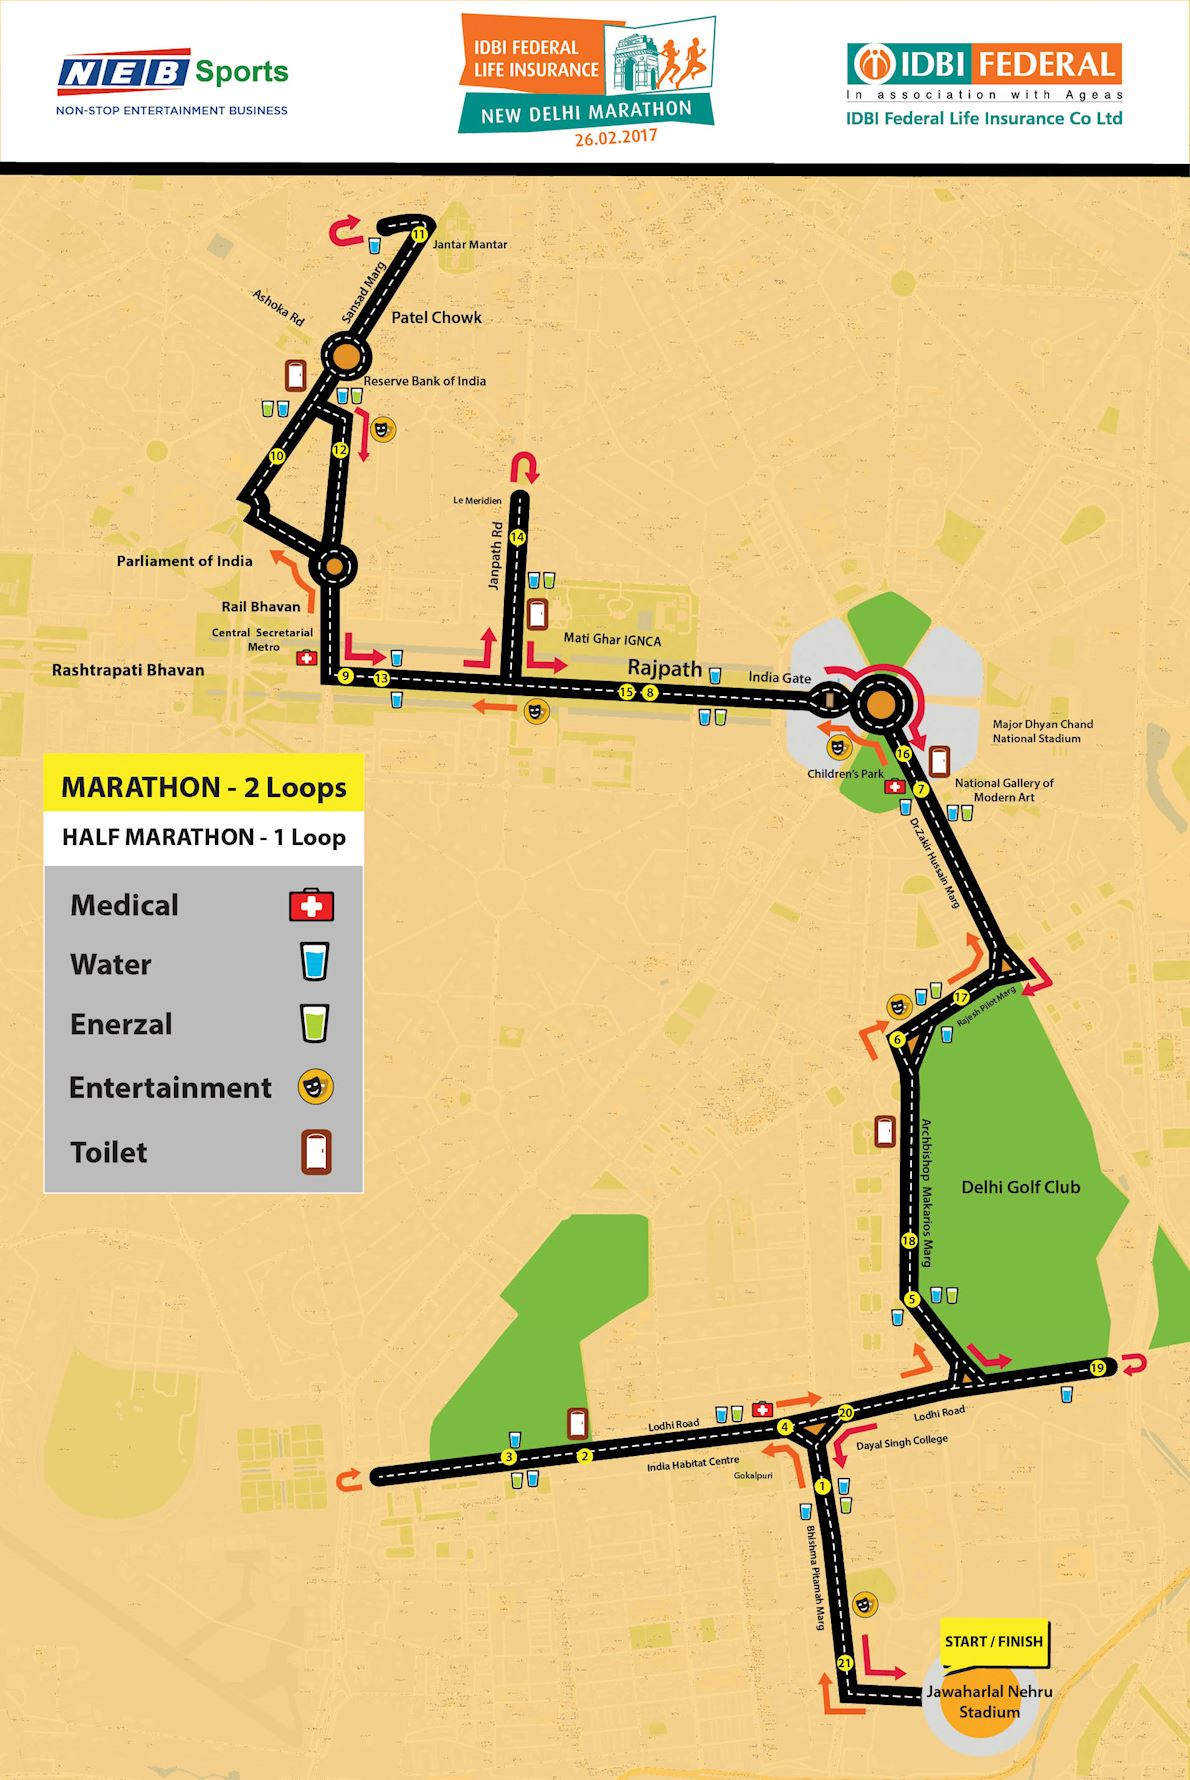 IDBI Federal Life Insurance New Delhi Marathon Route Map